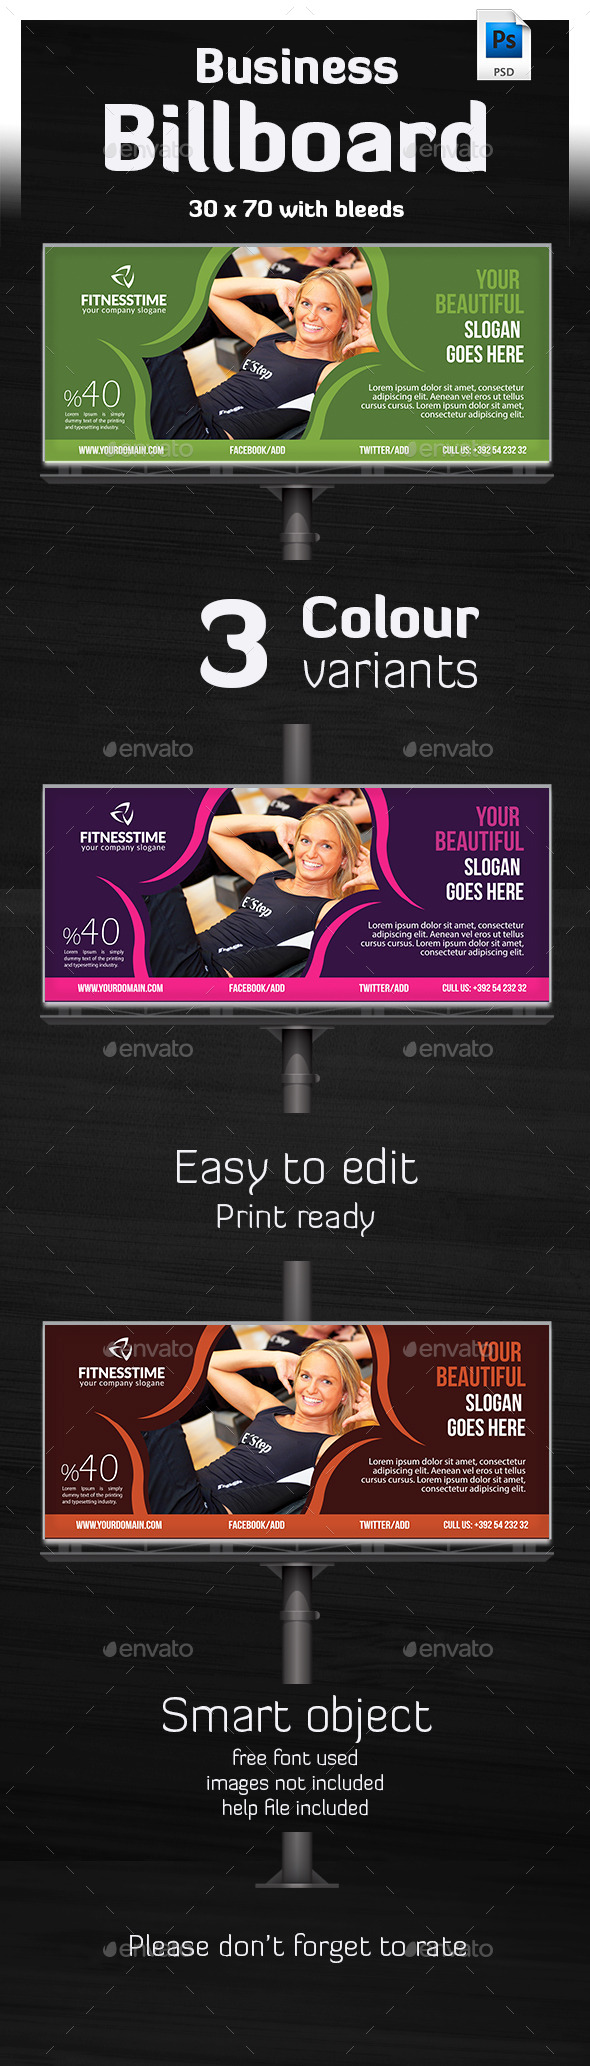 GraphicRiver Tivato Ultimate Billboard Template 10447508